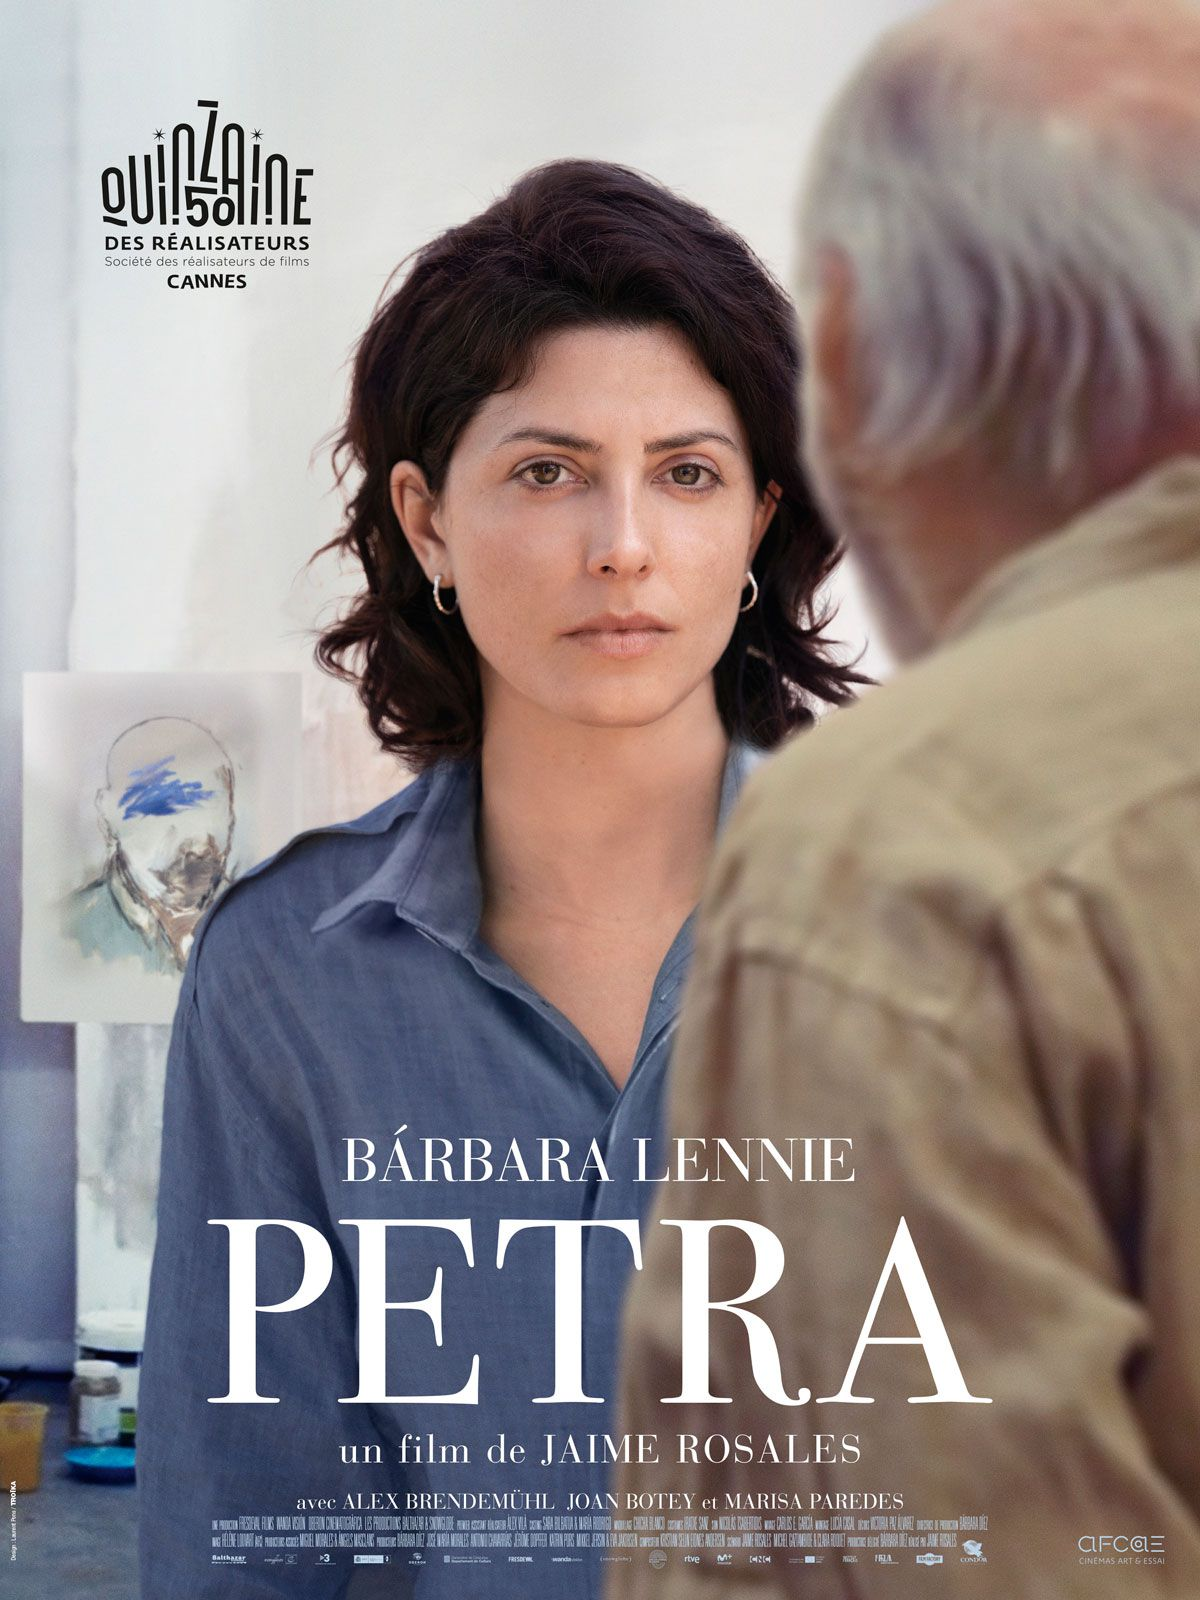 Petra - Film (2019) streaming VF gratuit complet